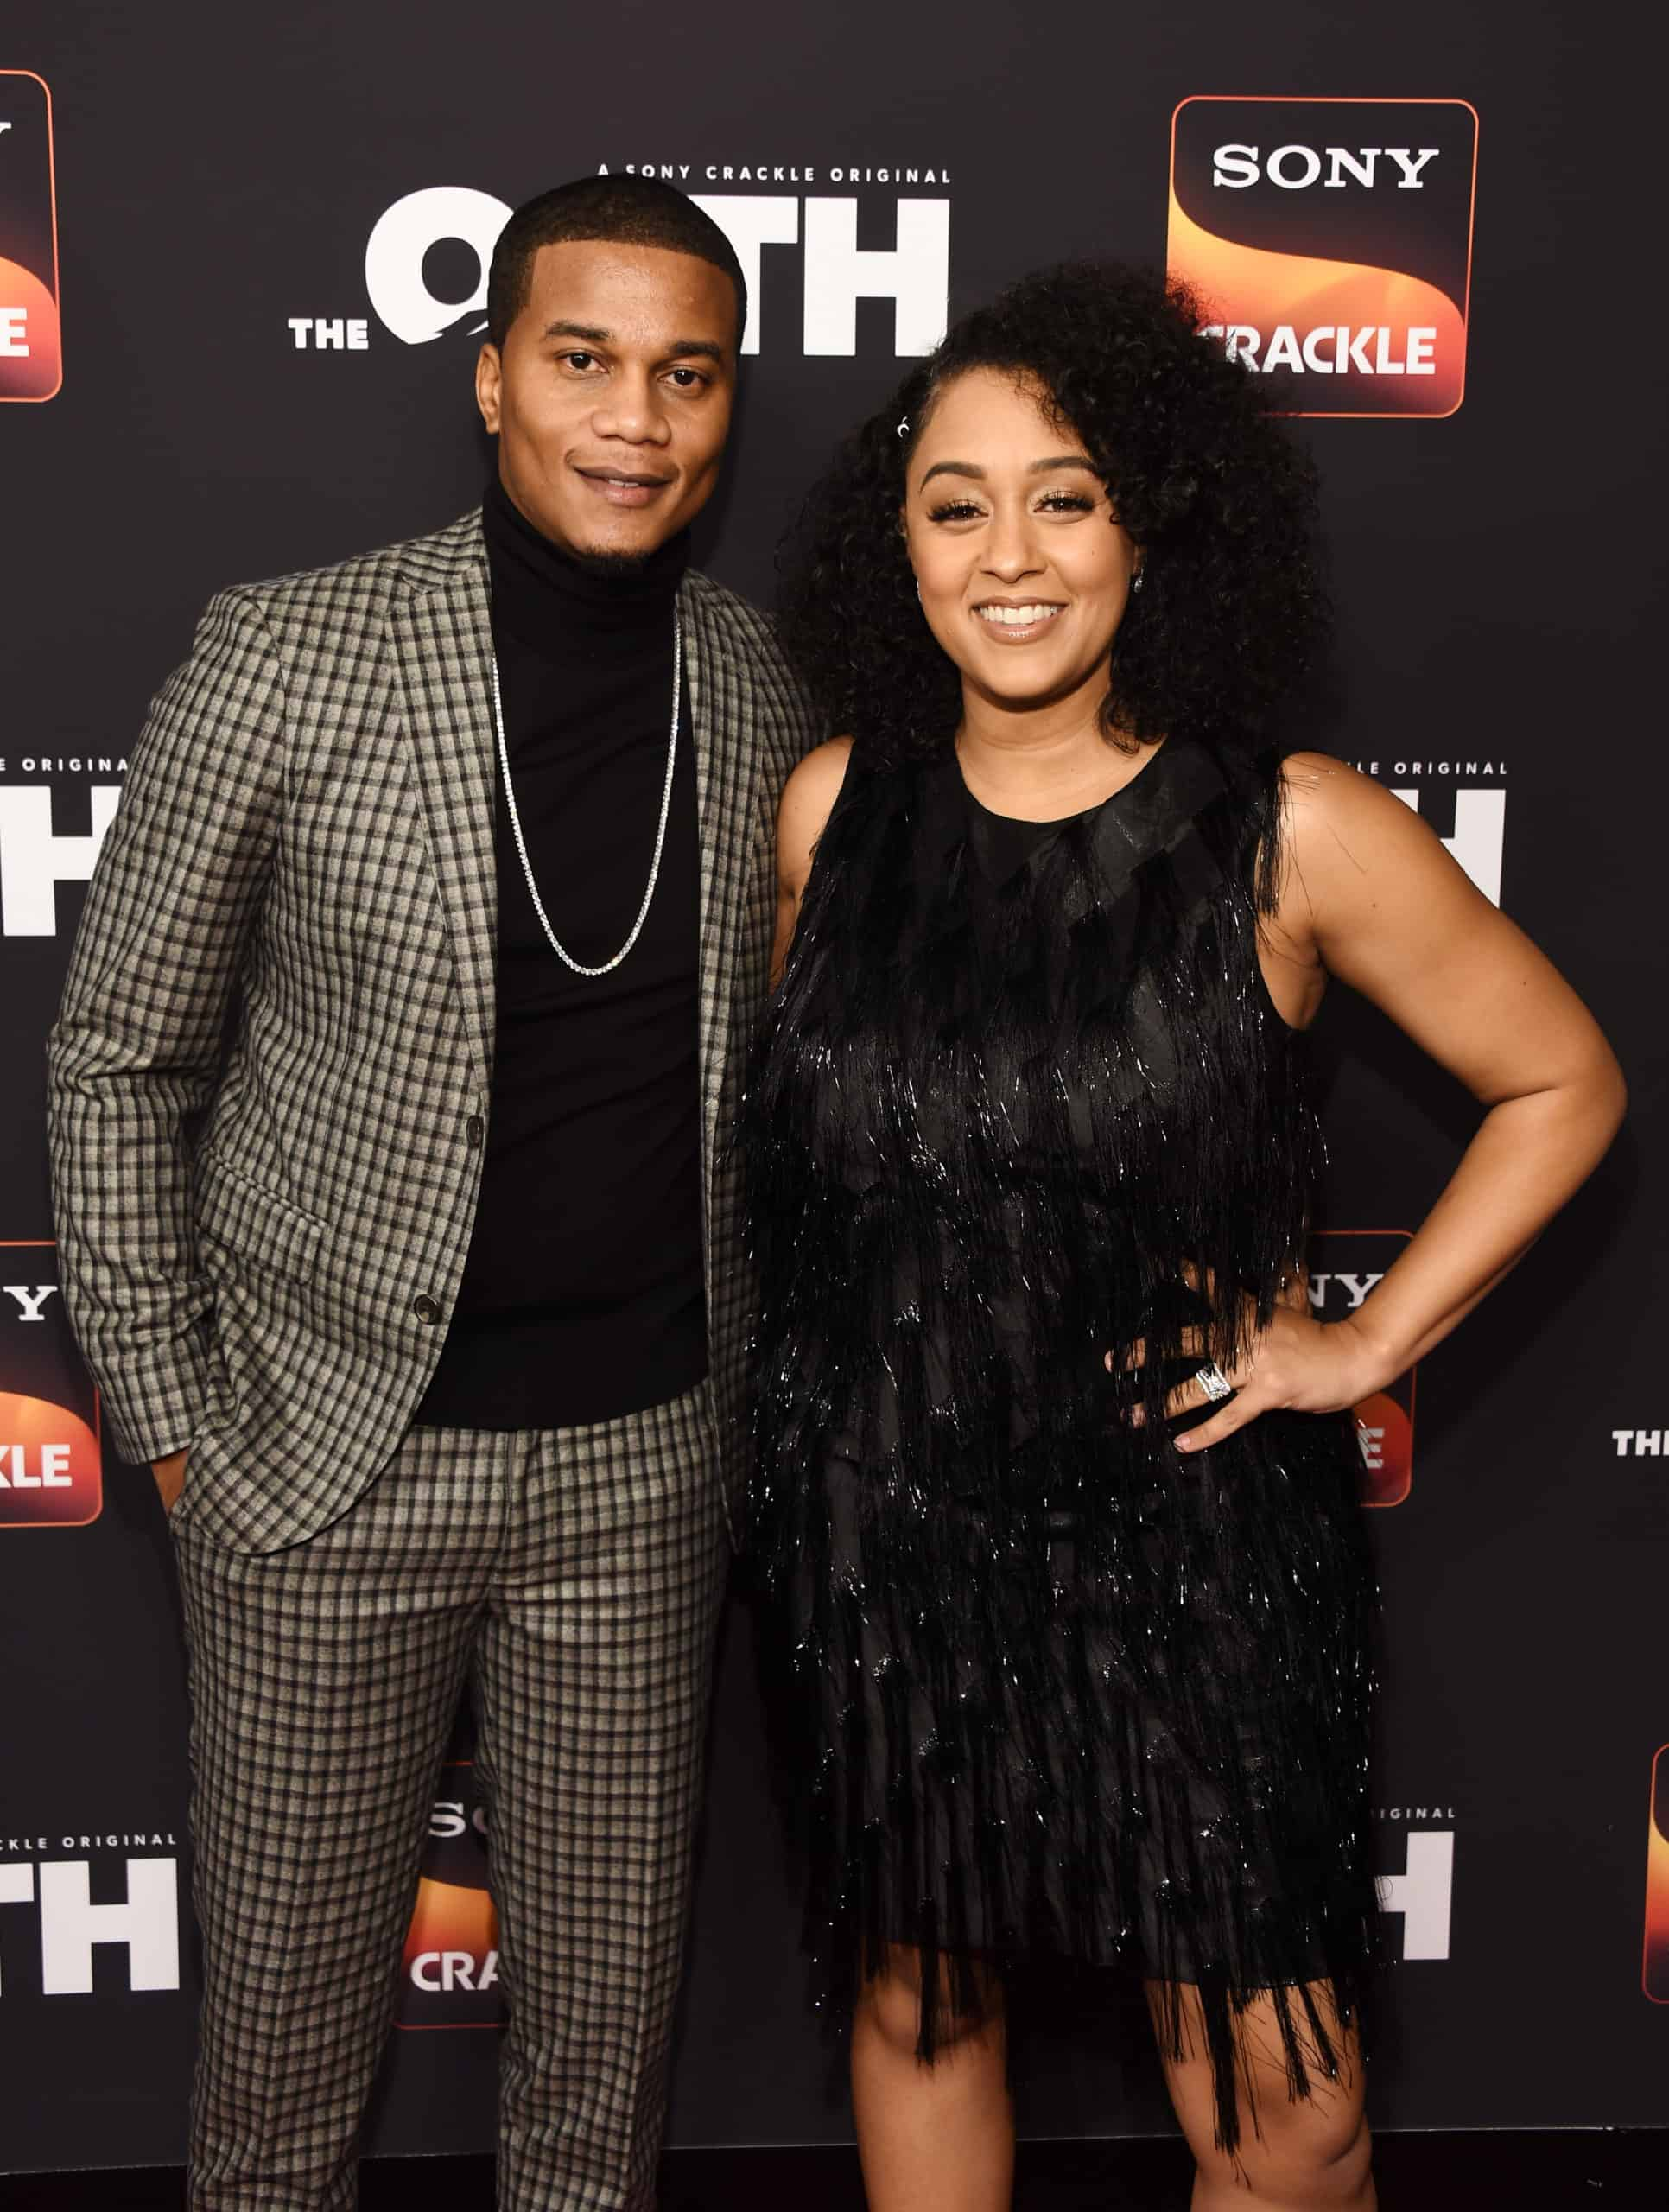 Tia Mowry-Hardrict Schedules Intercourse With Husband Cory Hardrict